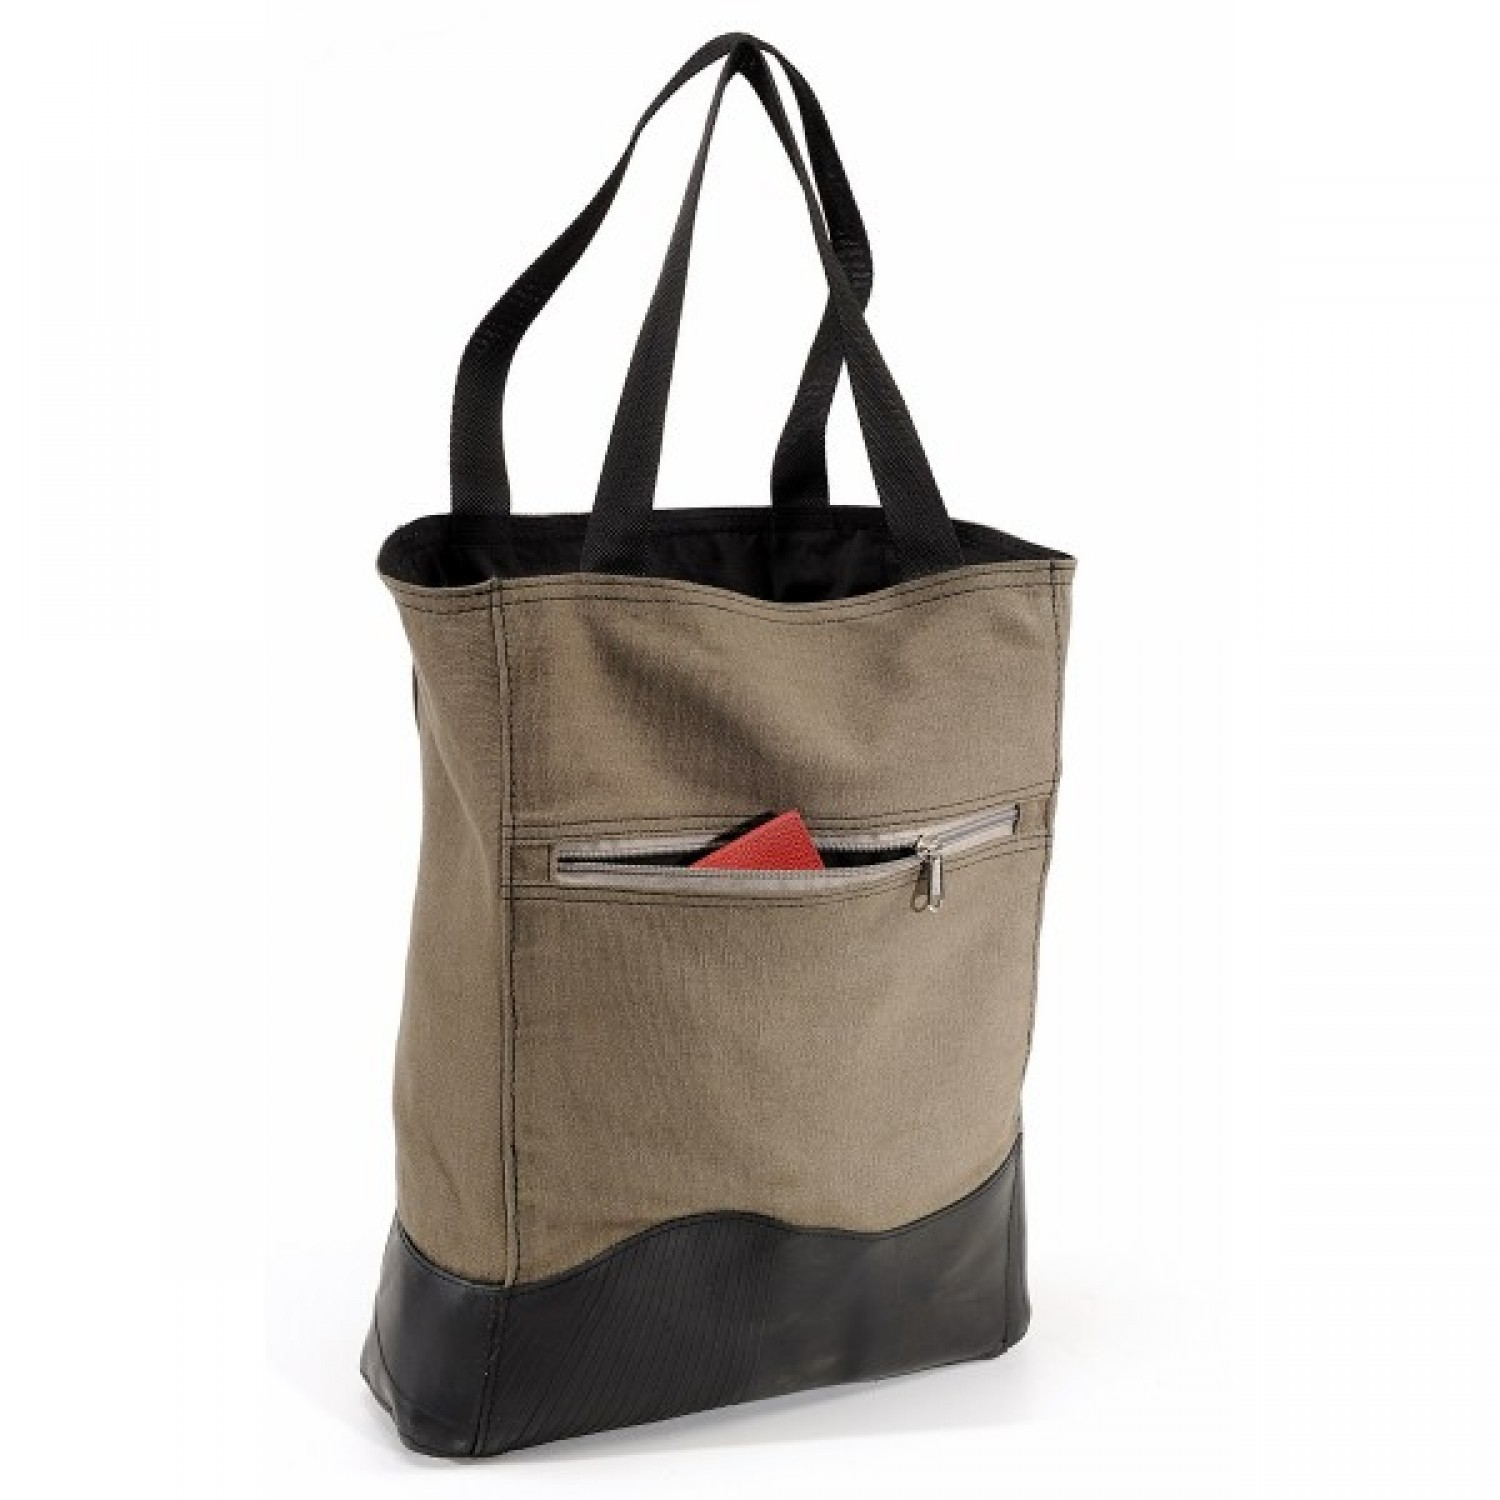 Shopping Bag | Tote Bag | Upcycling Bag | khaki